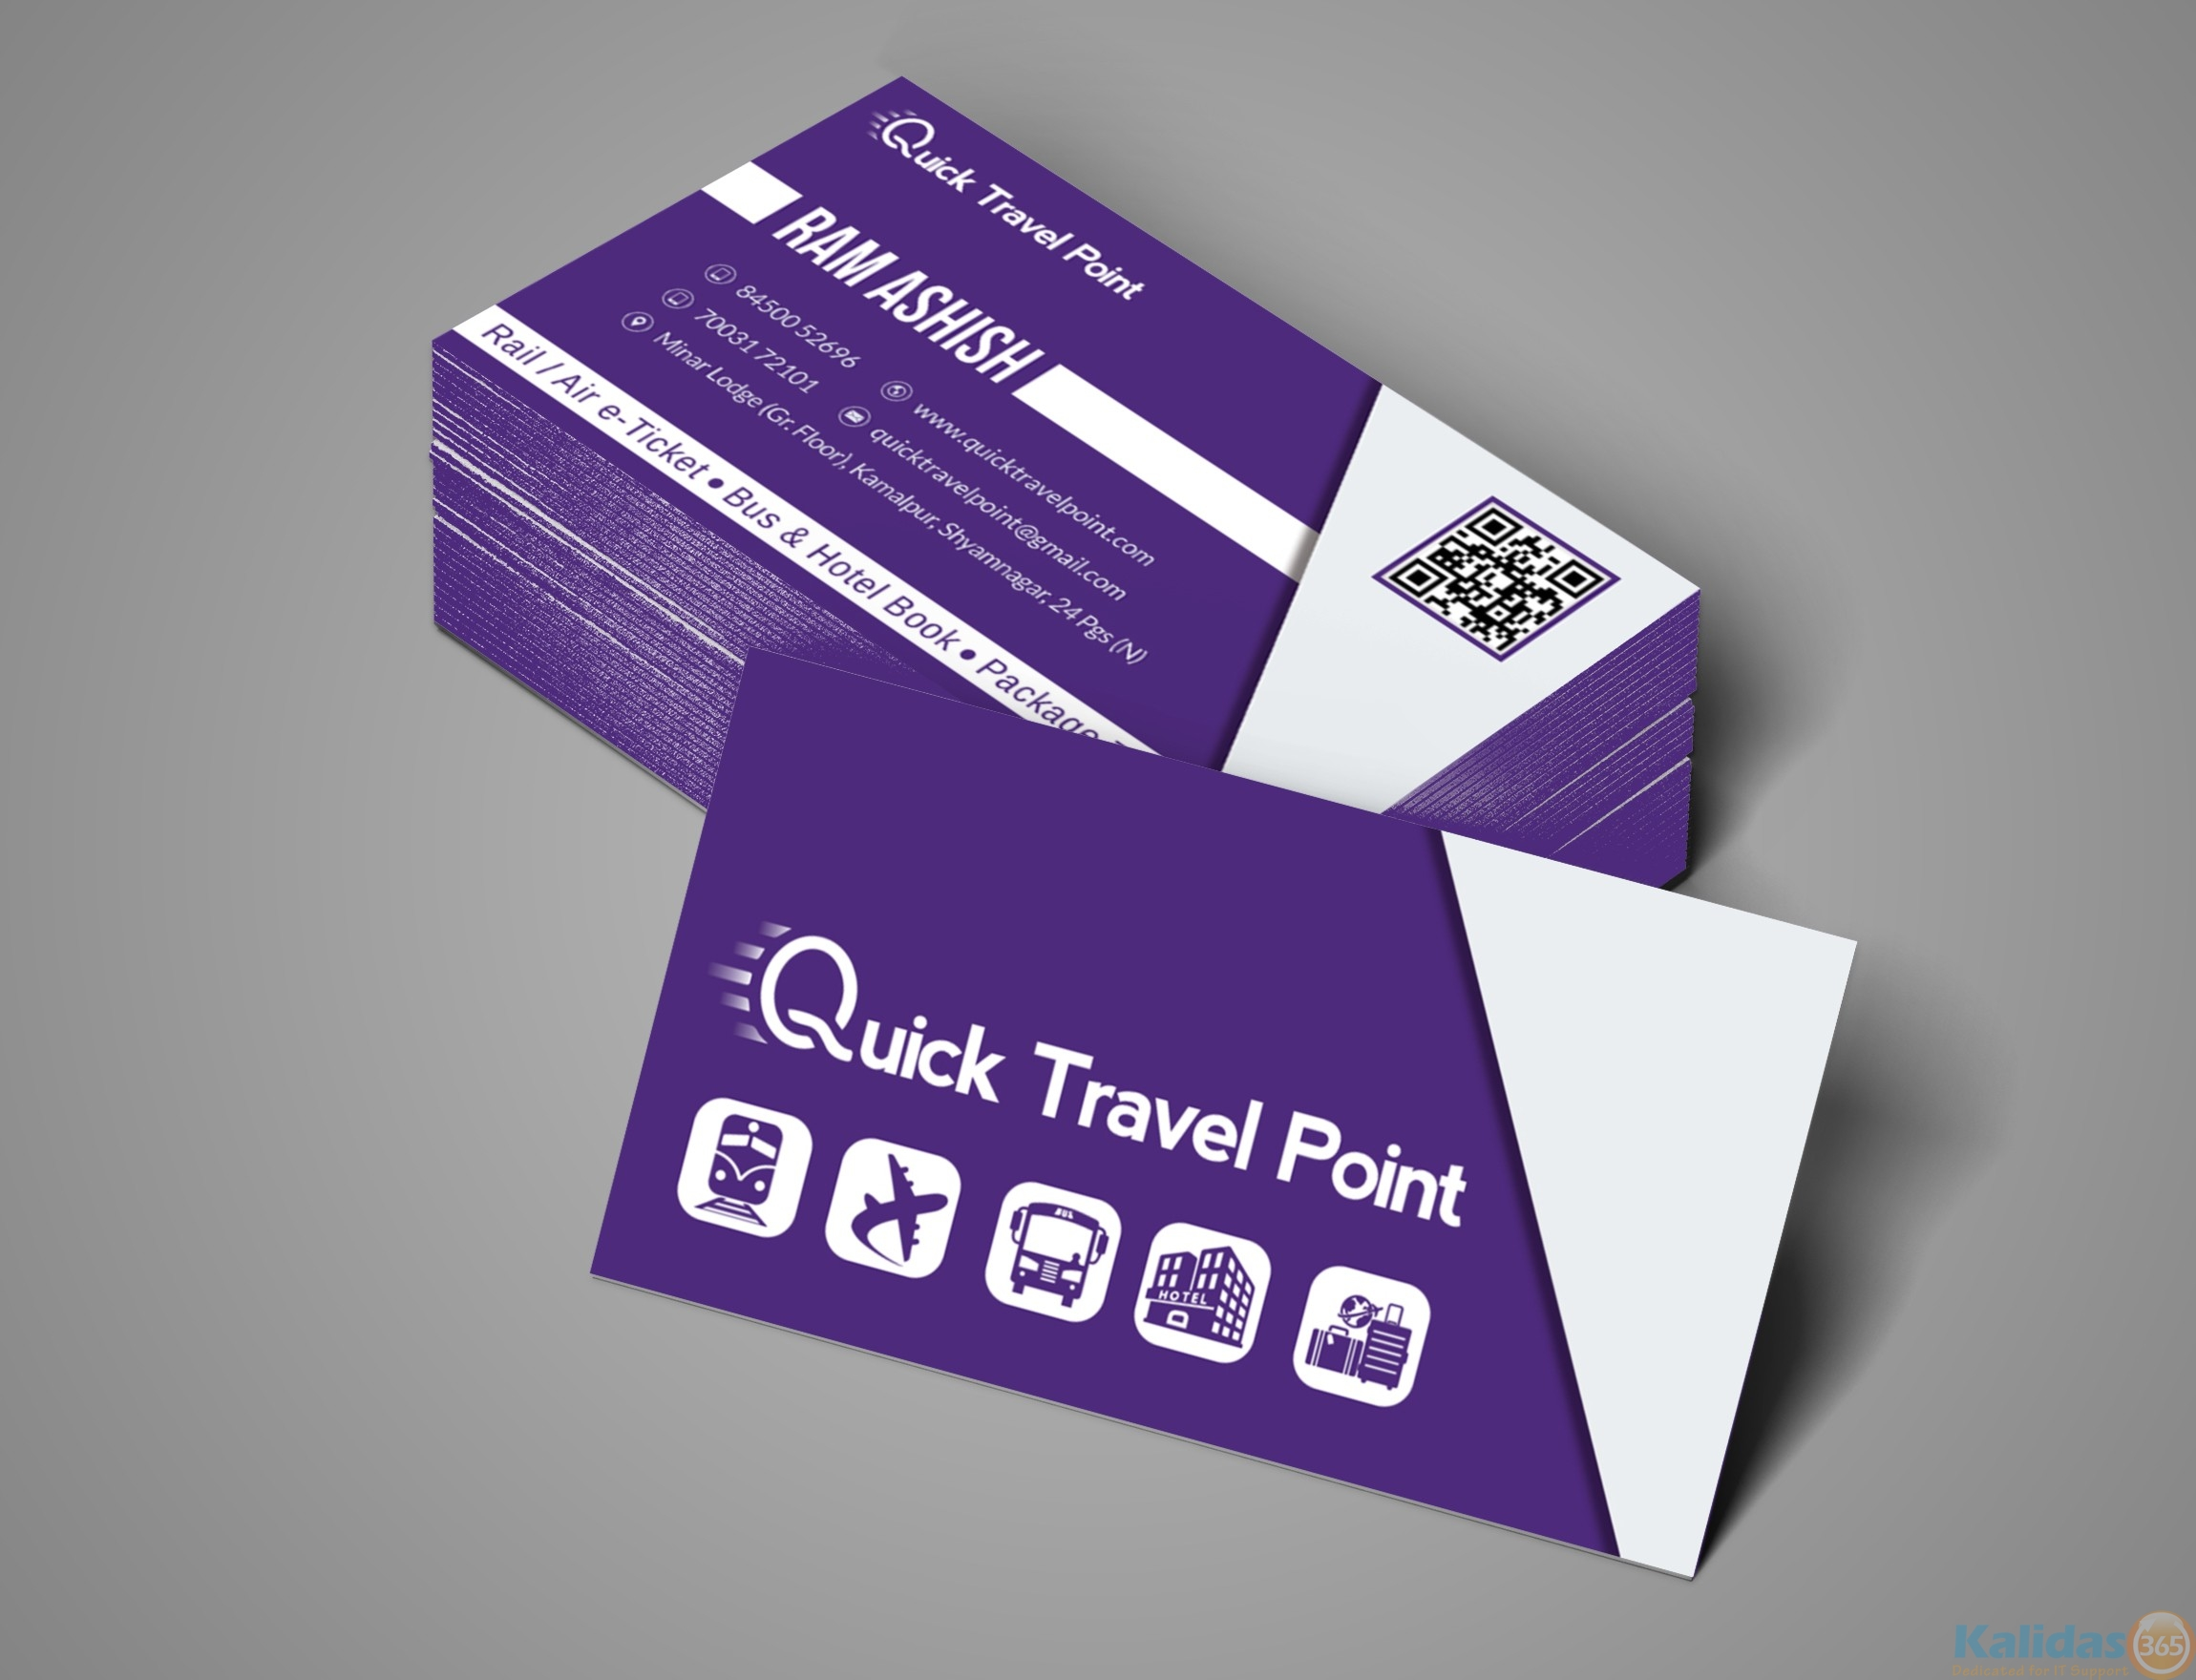 Business card for quick travel point kalidas365 it solutions business card for quick travel point reheart Image collections